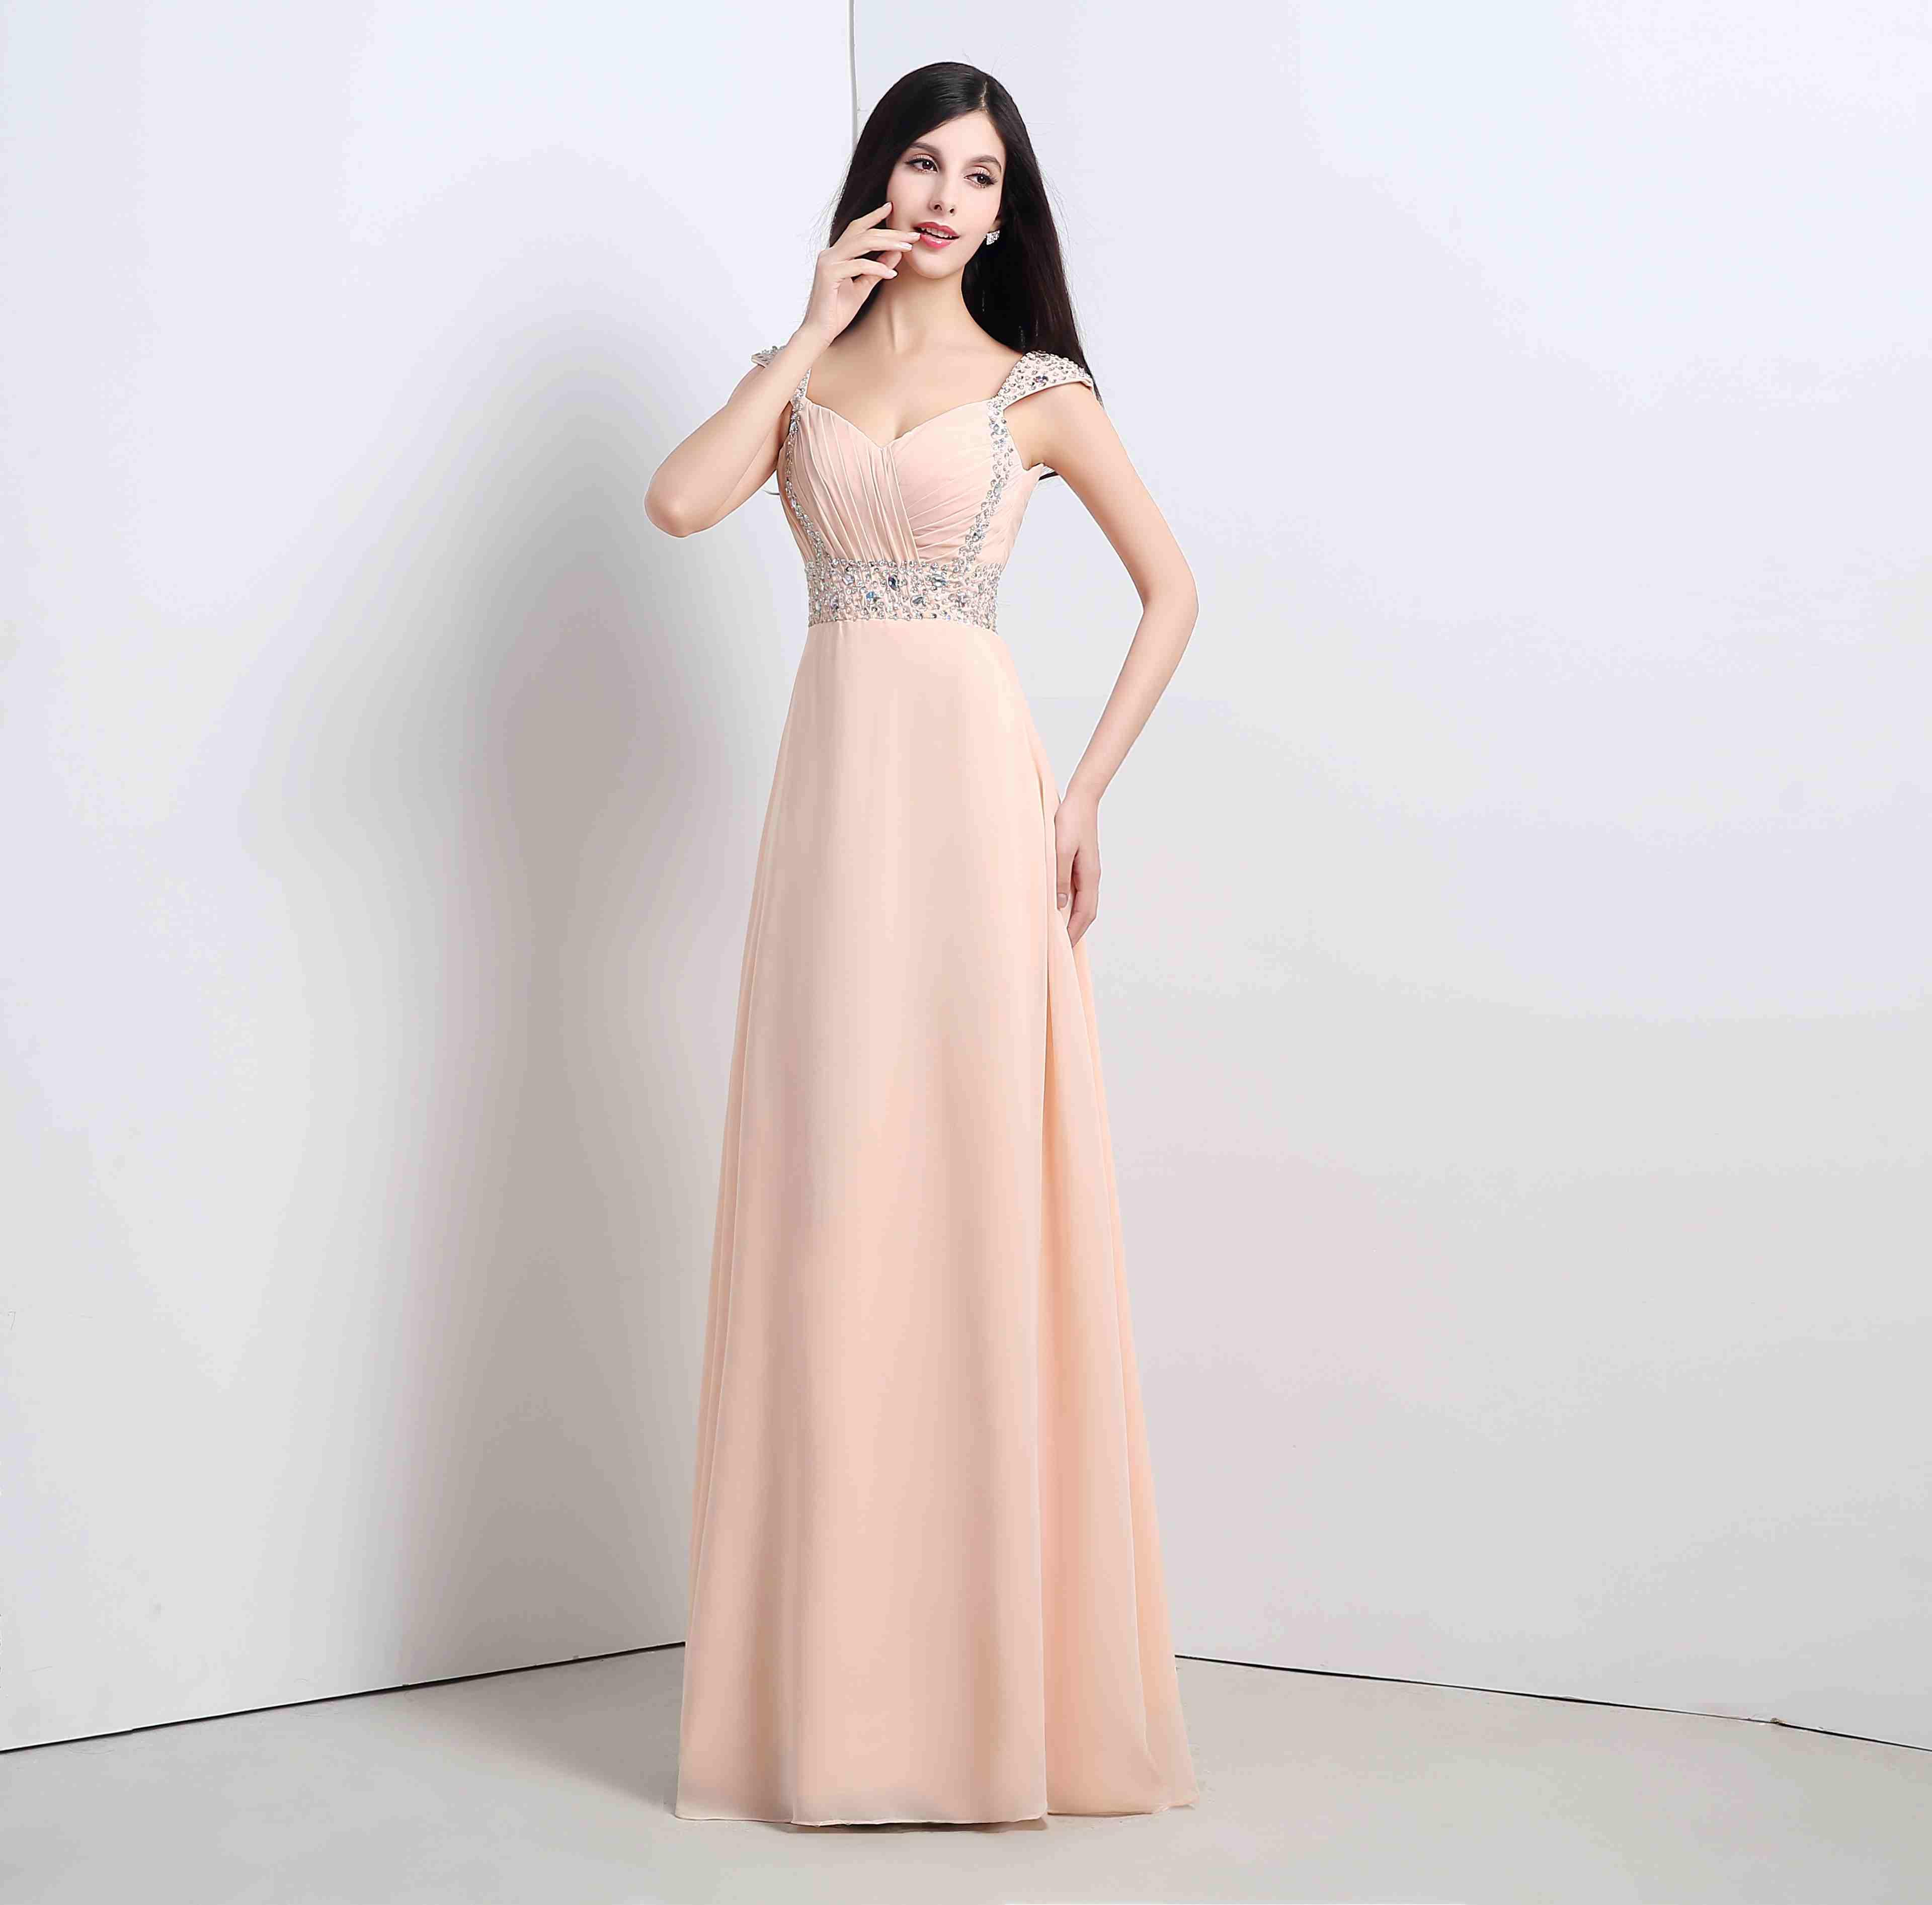 Champagne pink chiffon floor length 2015 a line bridesmaid dresses champagne pink chiffon floor length 2015 a line bridesmaid dresses off shoulder crystal sequins waistband lace up back formal prom dress lz bridesmaid ombrellifo Choice Image